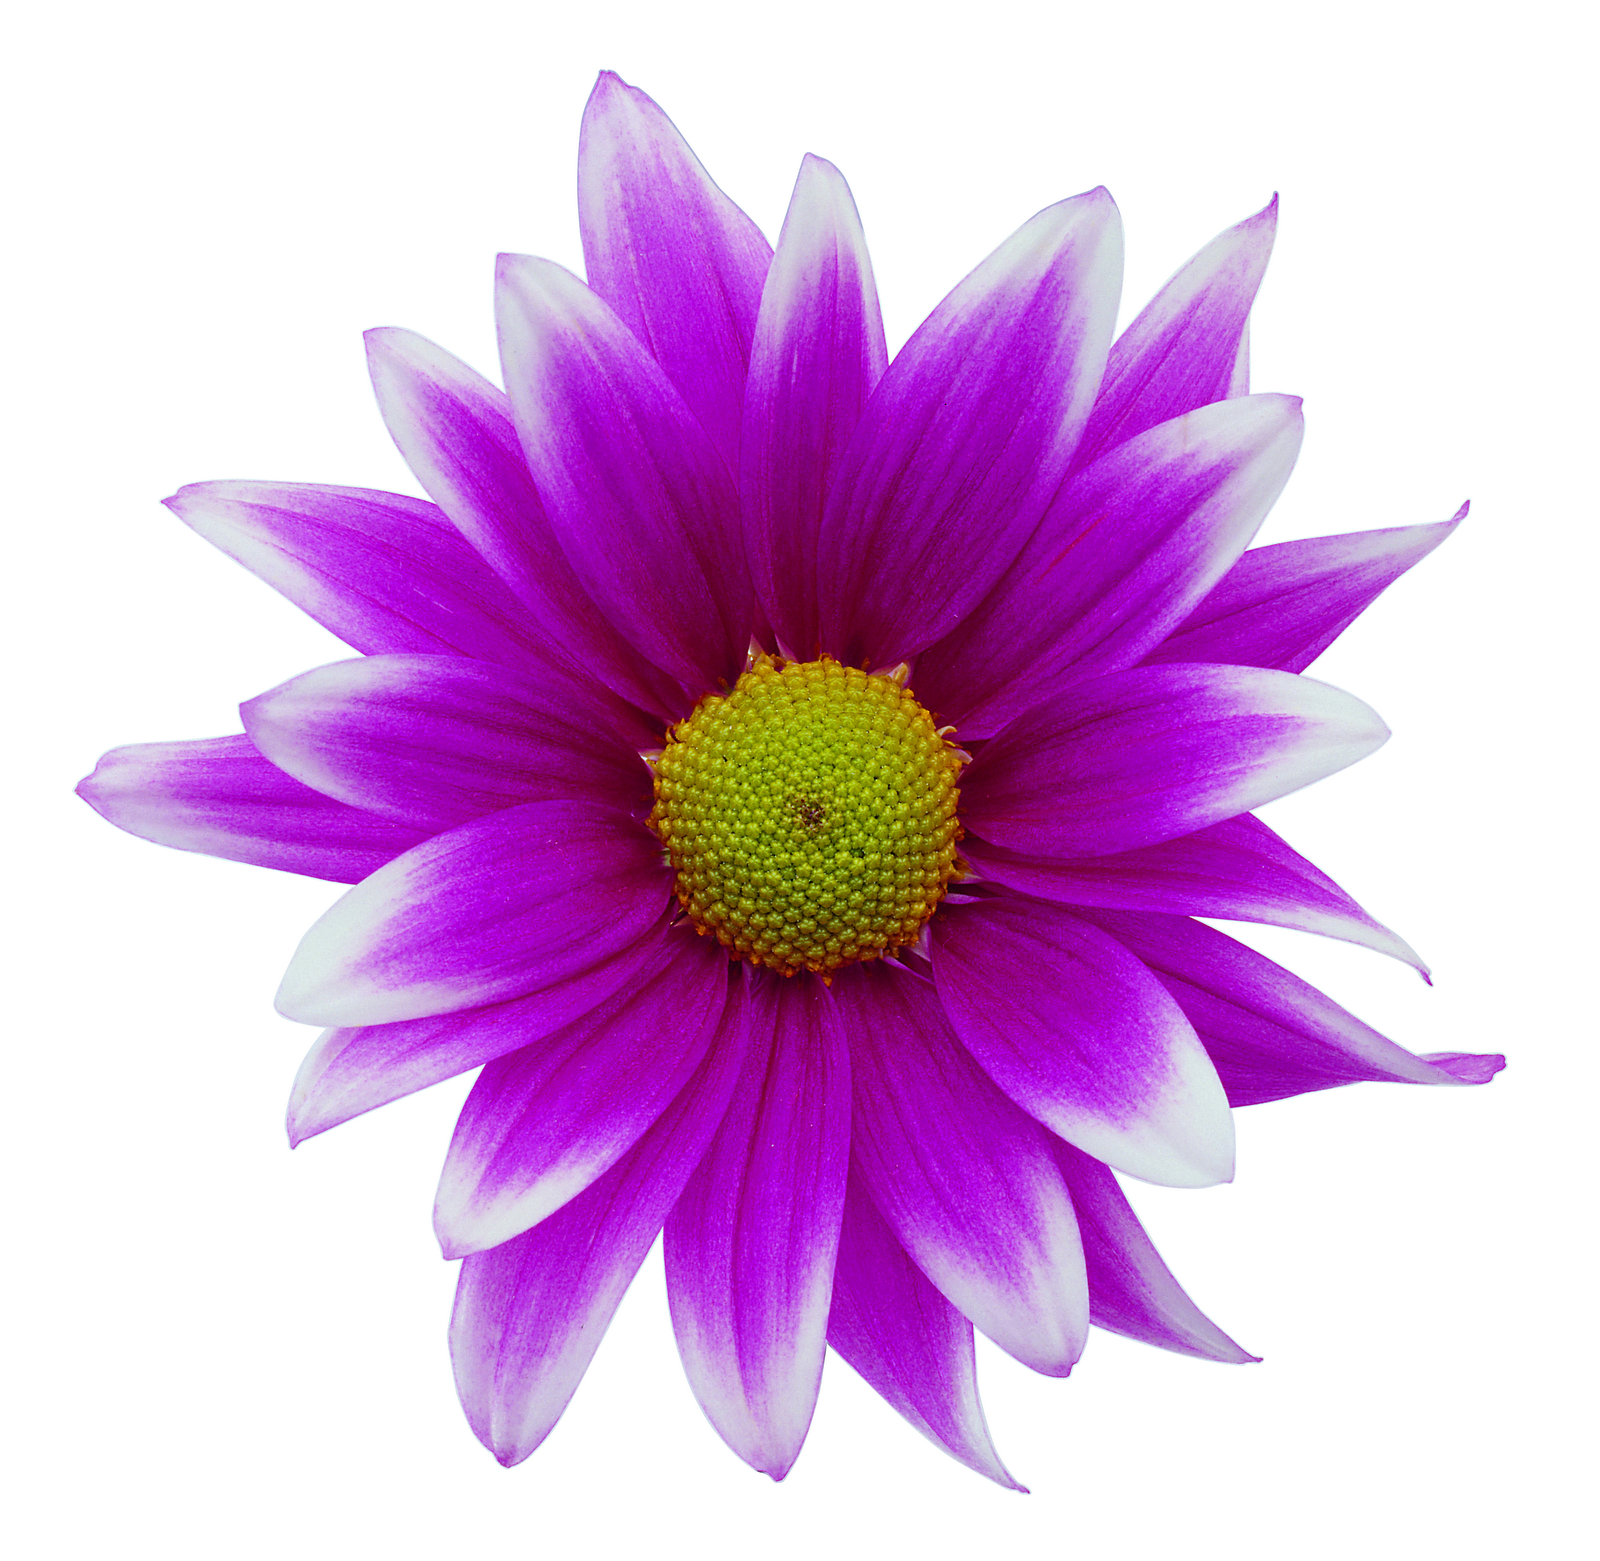 Purple Flower Png image #17940